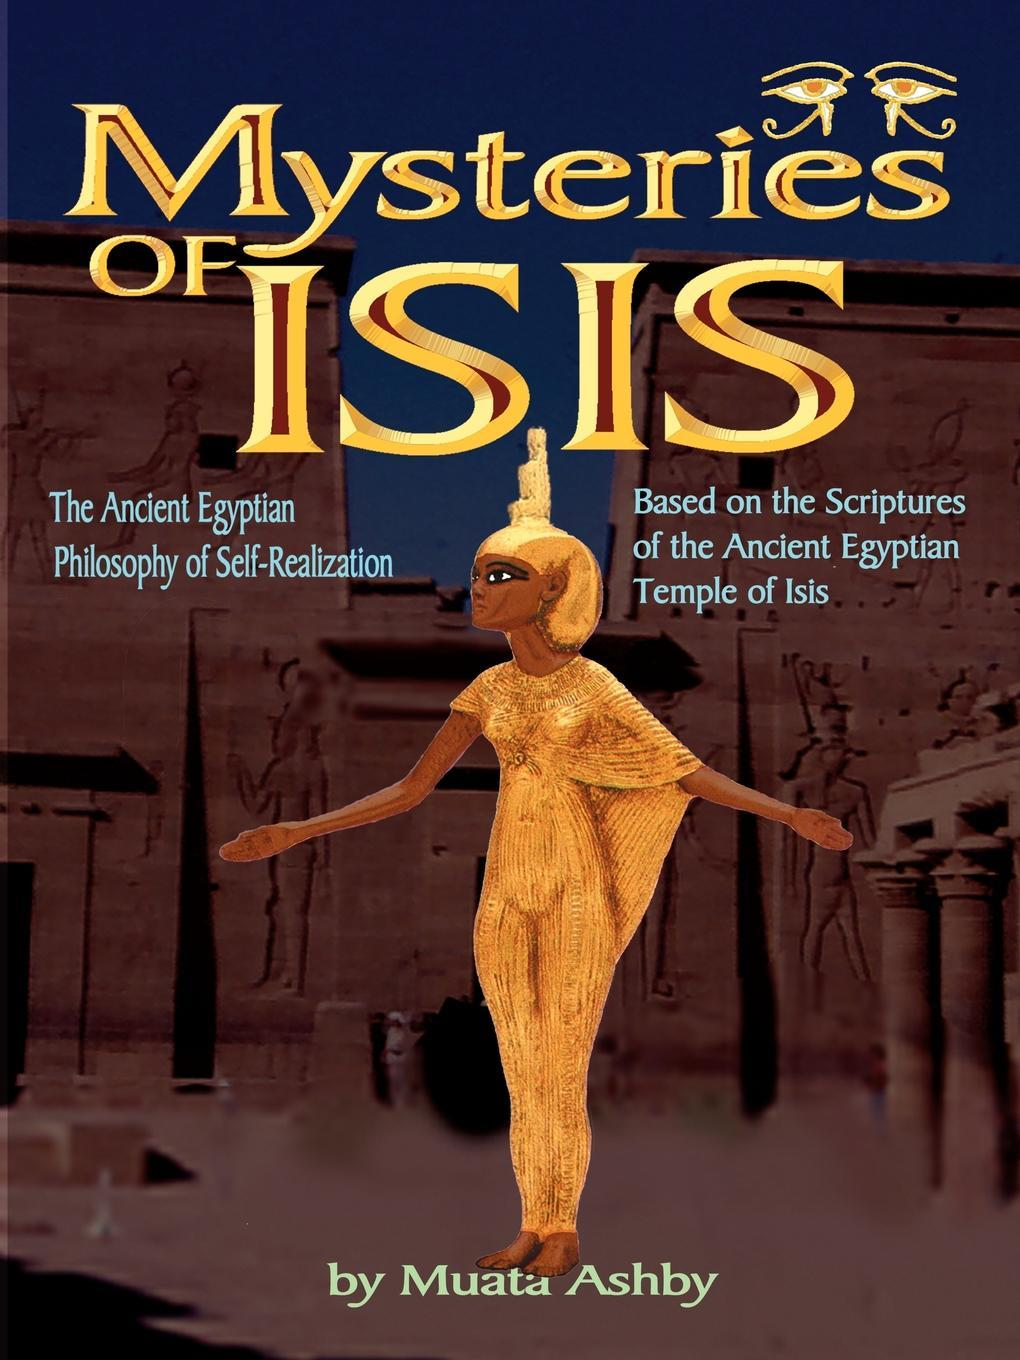 Mysteries of Isis The Ancient Egyptian Philosophy of Self-Realization EB9781937016104